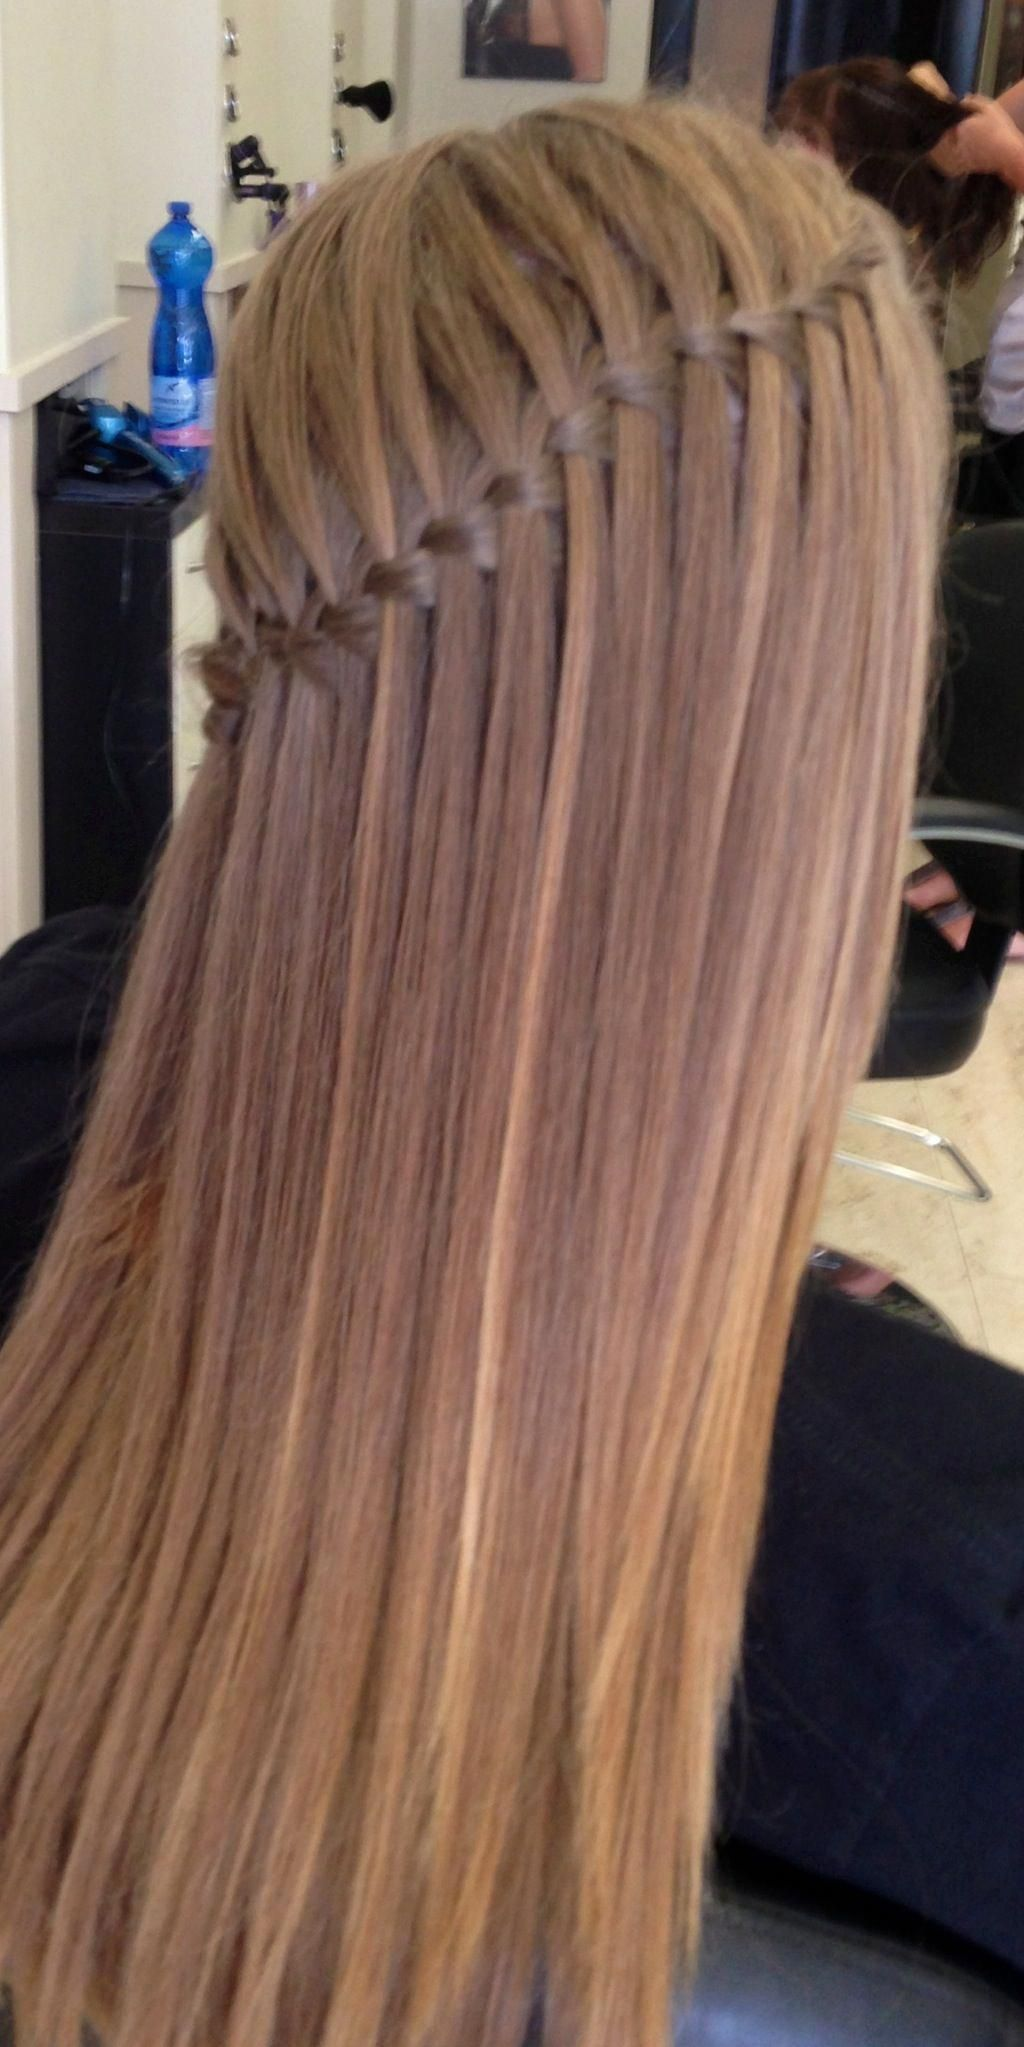 Permanent Hair Straightening Treatments Hairstyles To Do With Straightened Hair Quick Easy Hairstyles Straight Hairstyles Hair Styles Graduation Hairstyles